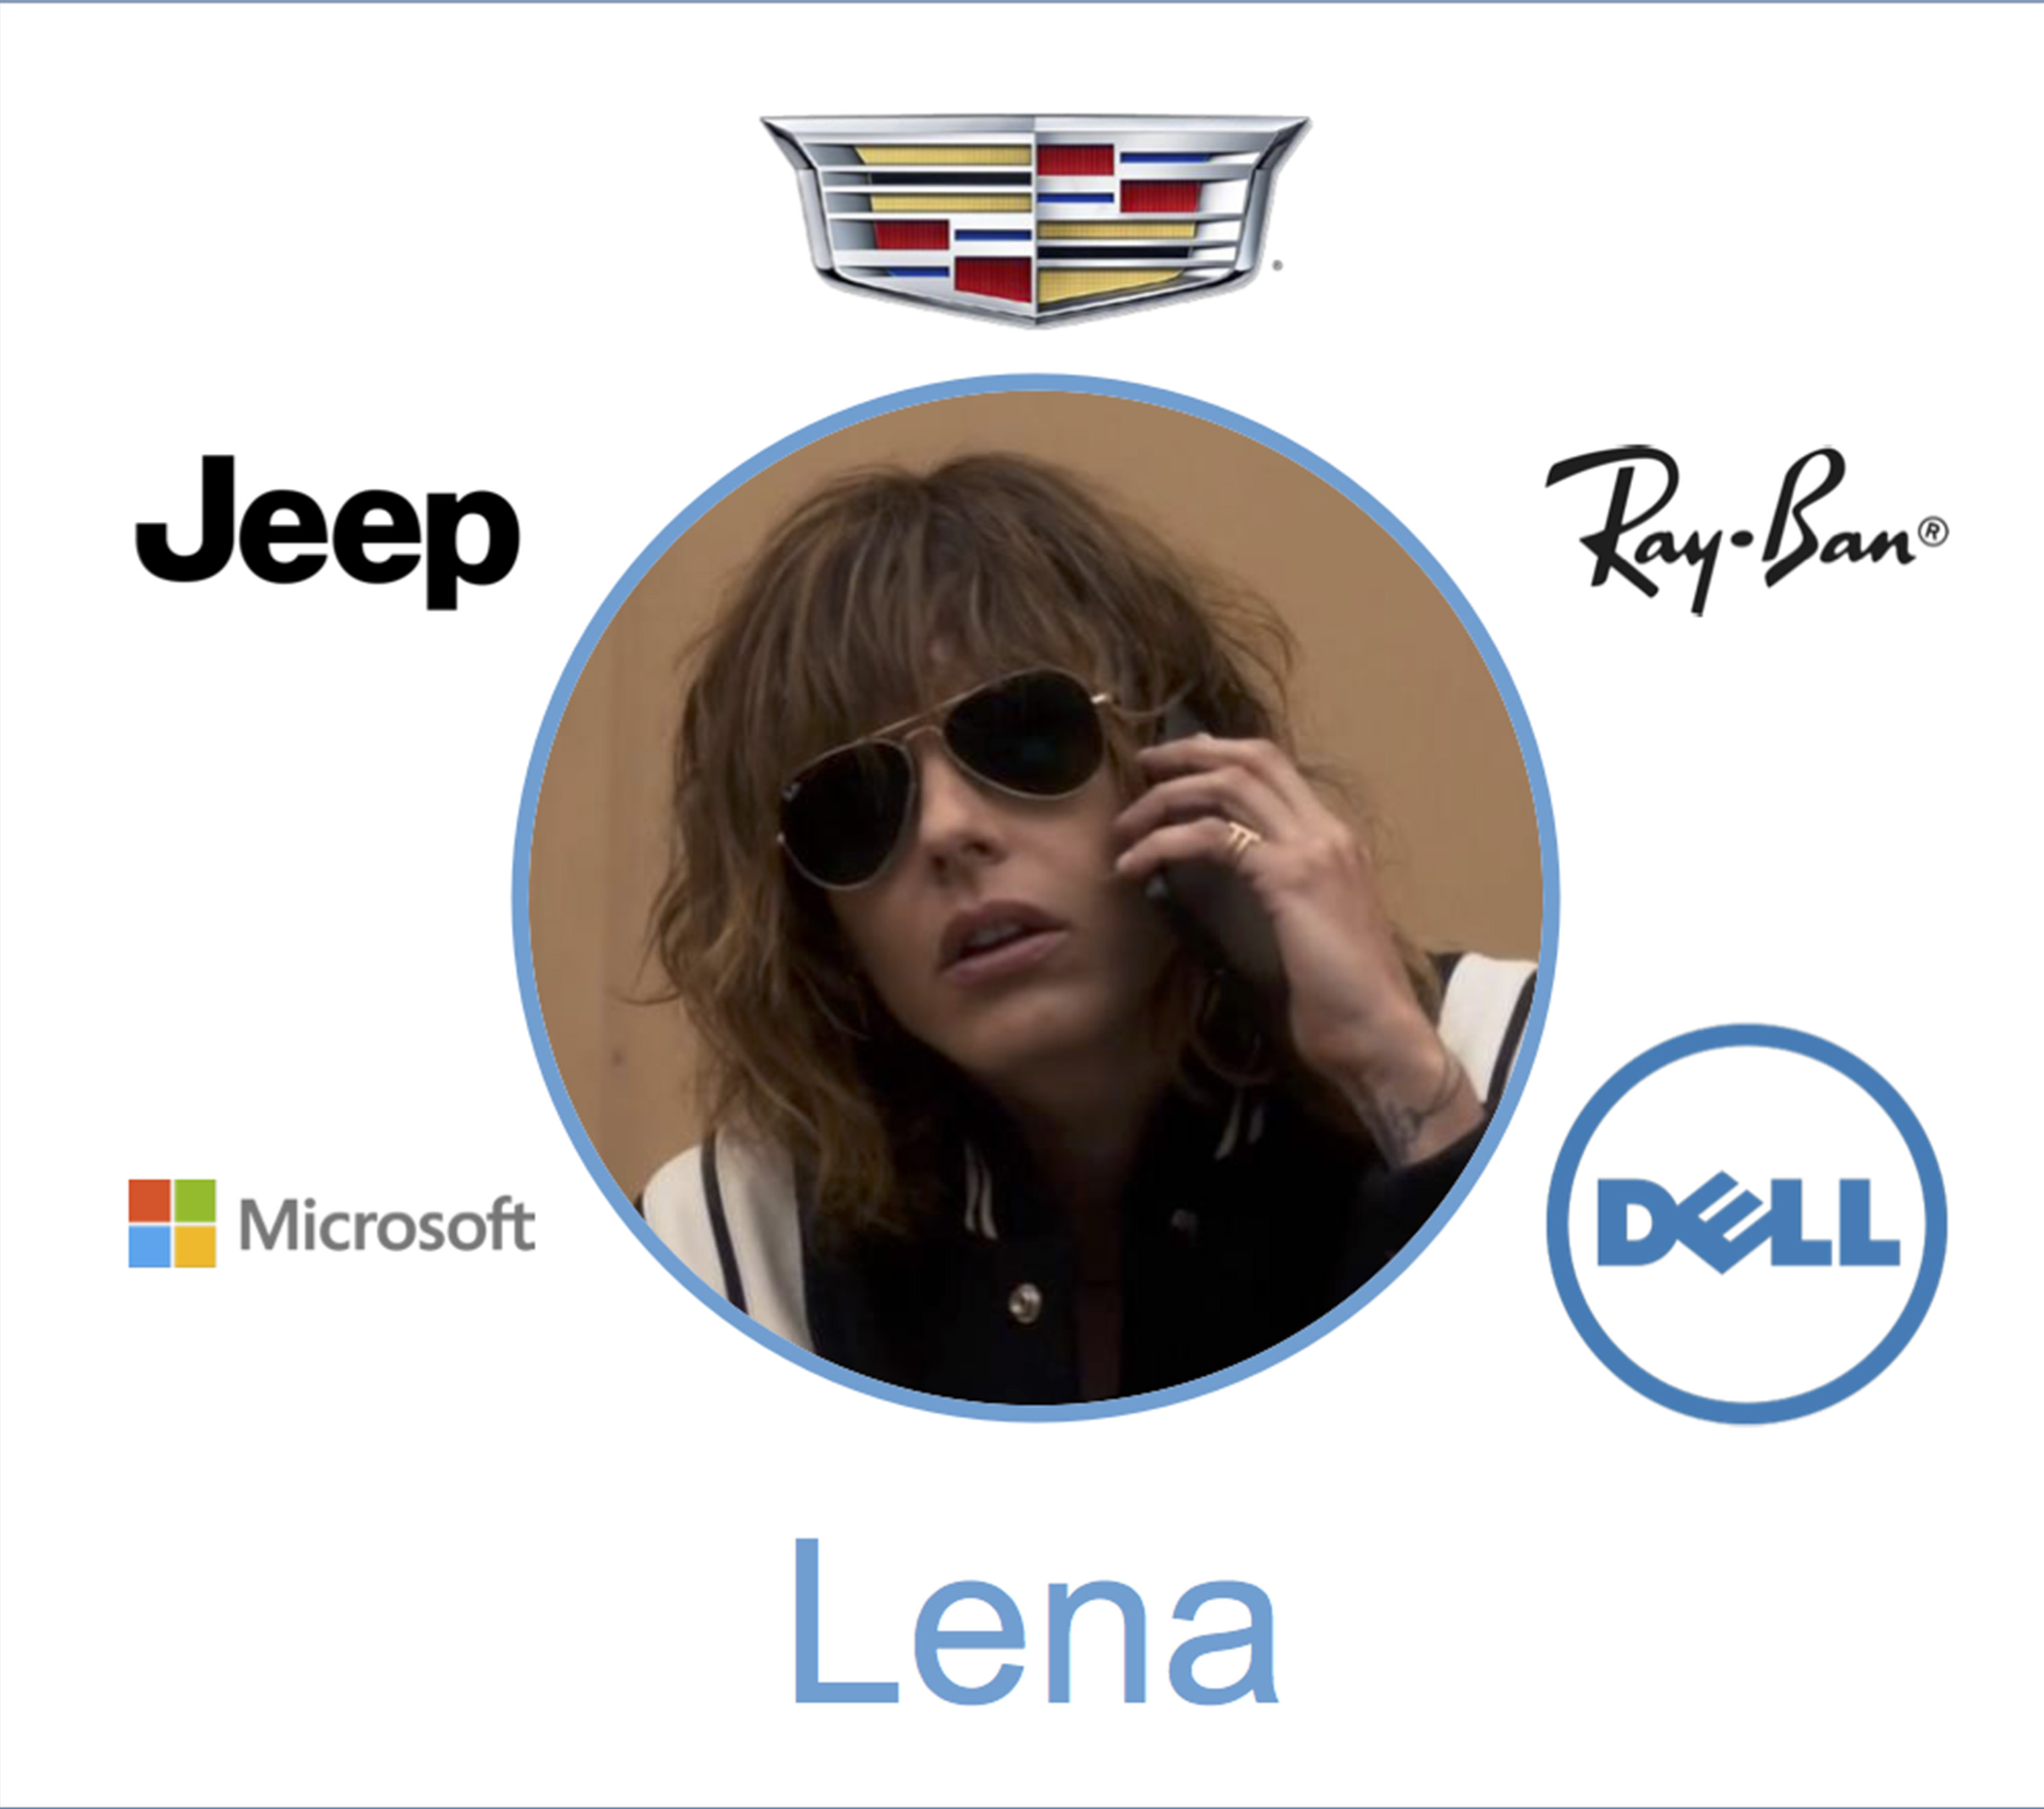 lena brands product placment ray donovan season 4 jeep ray ban cadillac dell microsoft